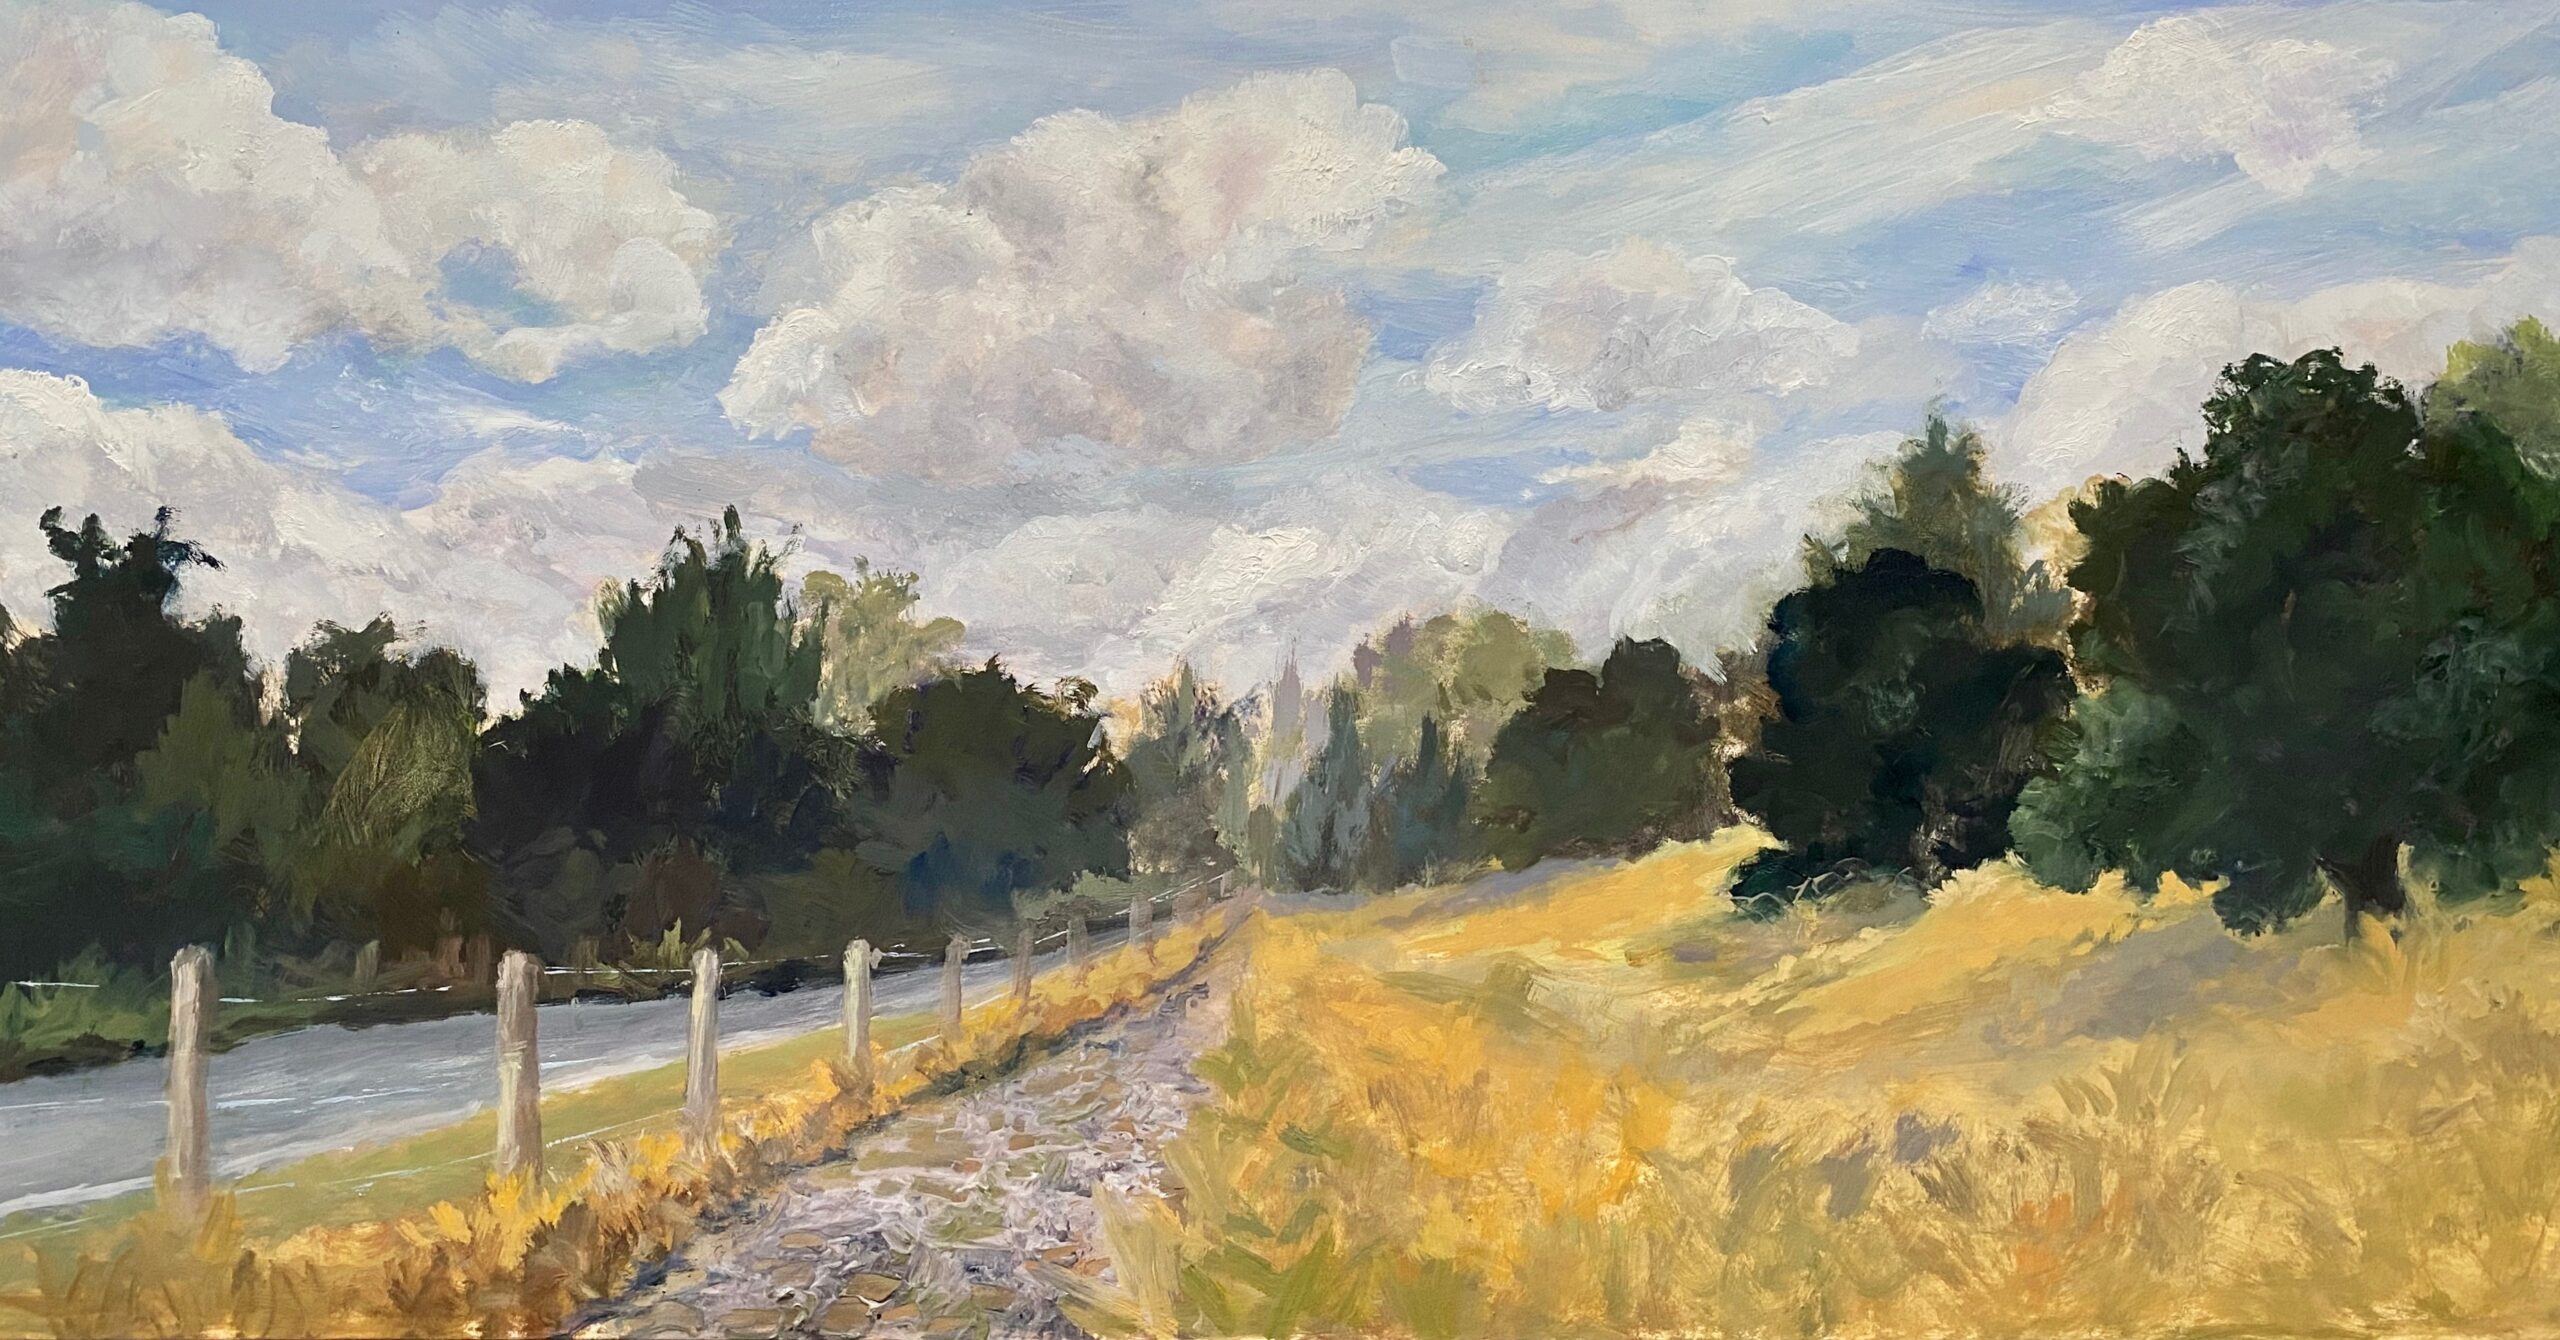 This is a painting of a scene I view practically daily while walking my dog Maddie at the Horse Park. Wonderful clouds decorate the landscape.